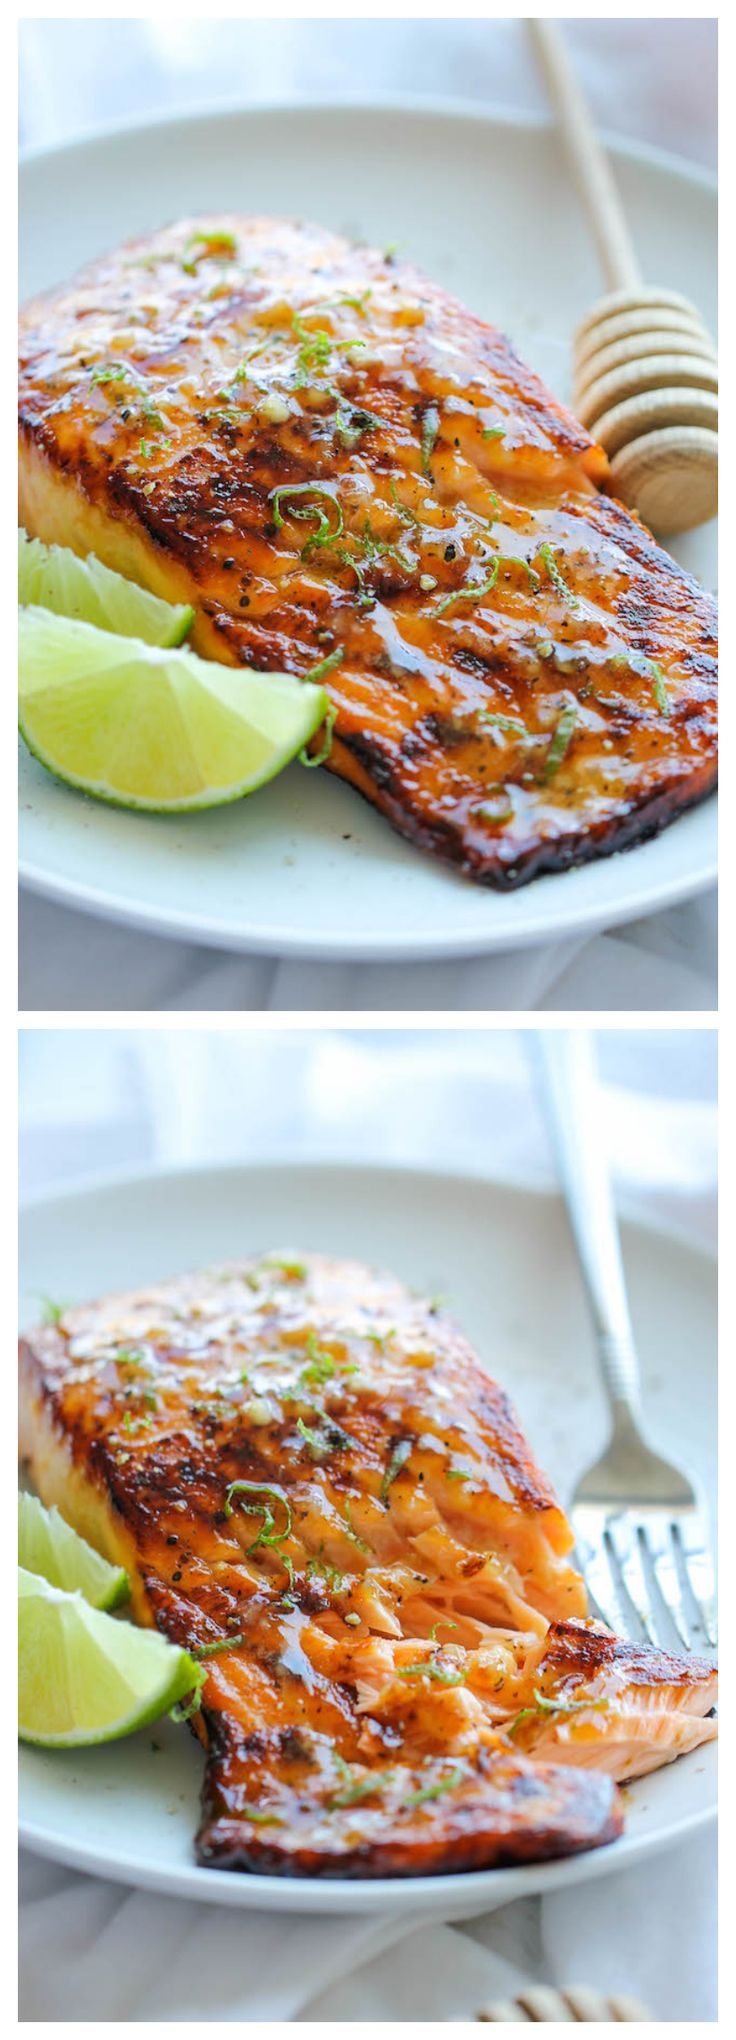 Honey Glazed Salmon - The easiest, most flavorful salmon you will ever make.